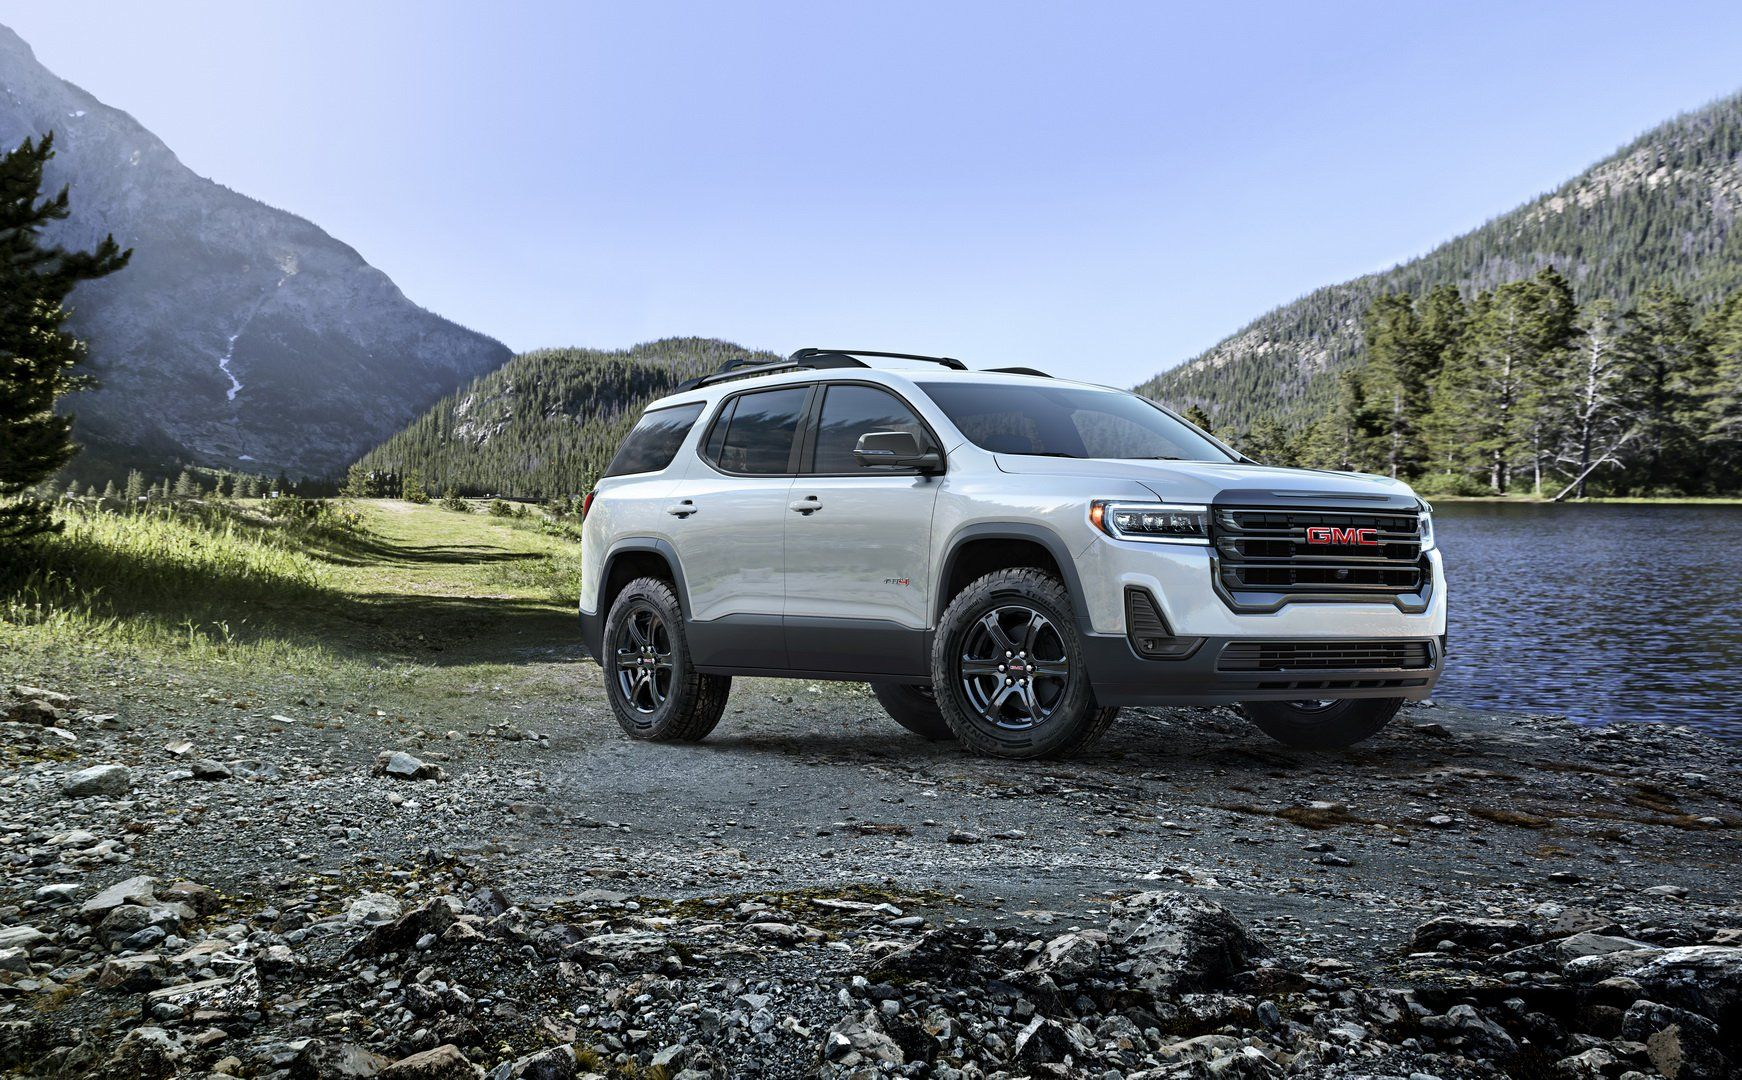 2020 Gmc Acadia Unveiled With New 230 Hp 2 0l Engine 9 Speed Auto Carscoops Gmc Acadia Suv